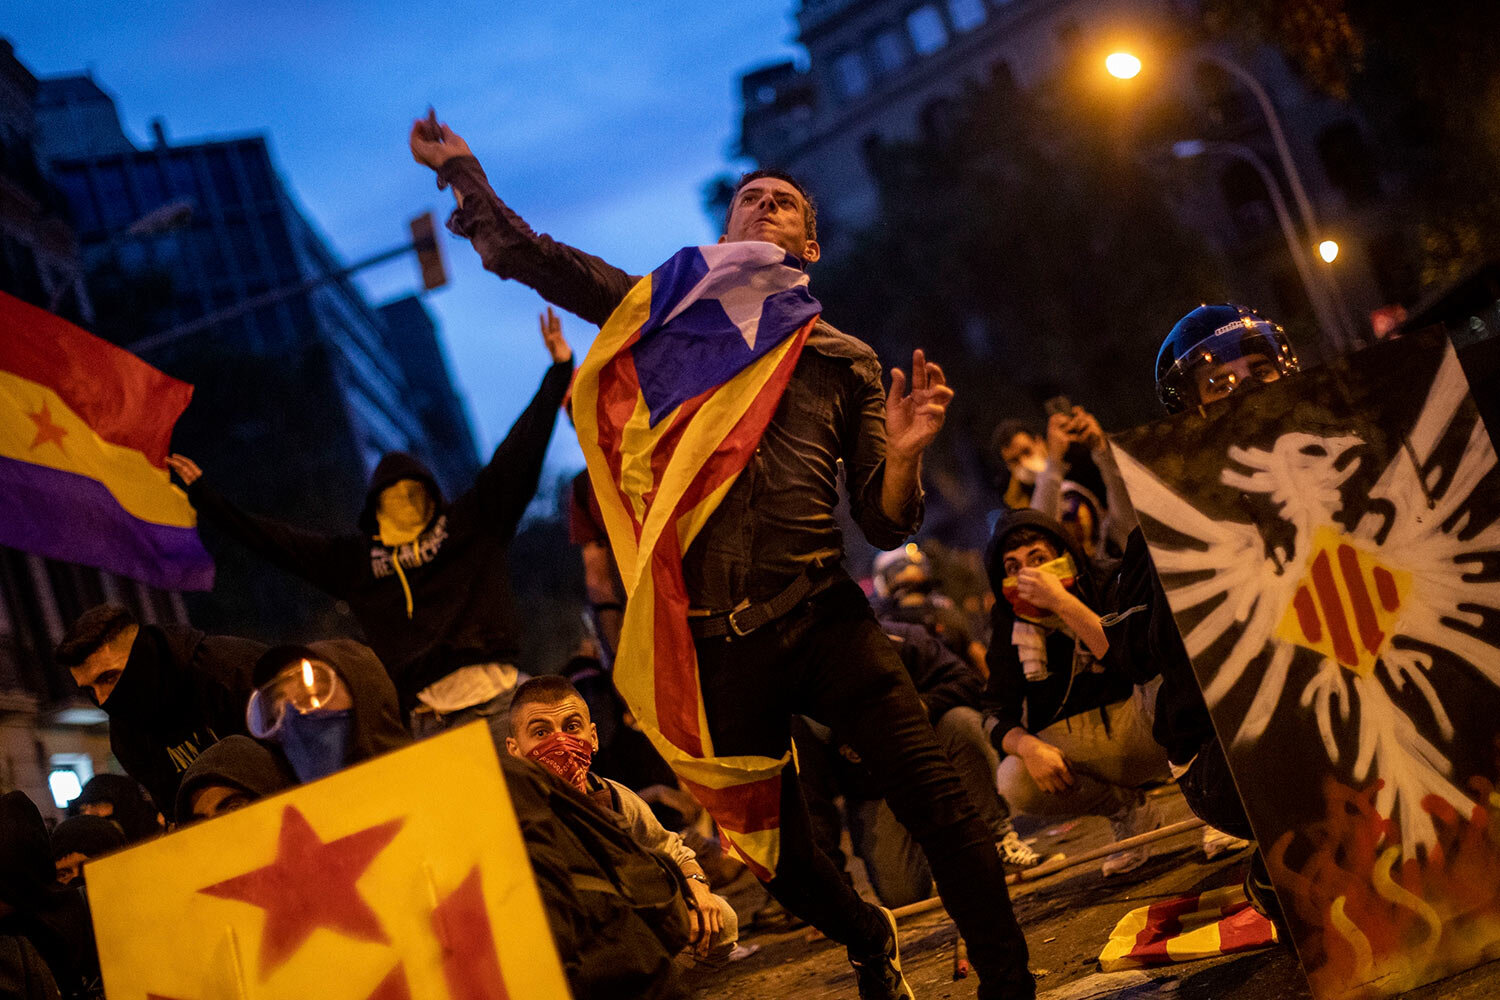 A Catalan pro-independence protestor throws a stone during clashes with police in Barcelona, Spain, Friday, Oct. 18, 2019.(AP Photo/Bernat Armangue)